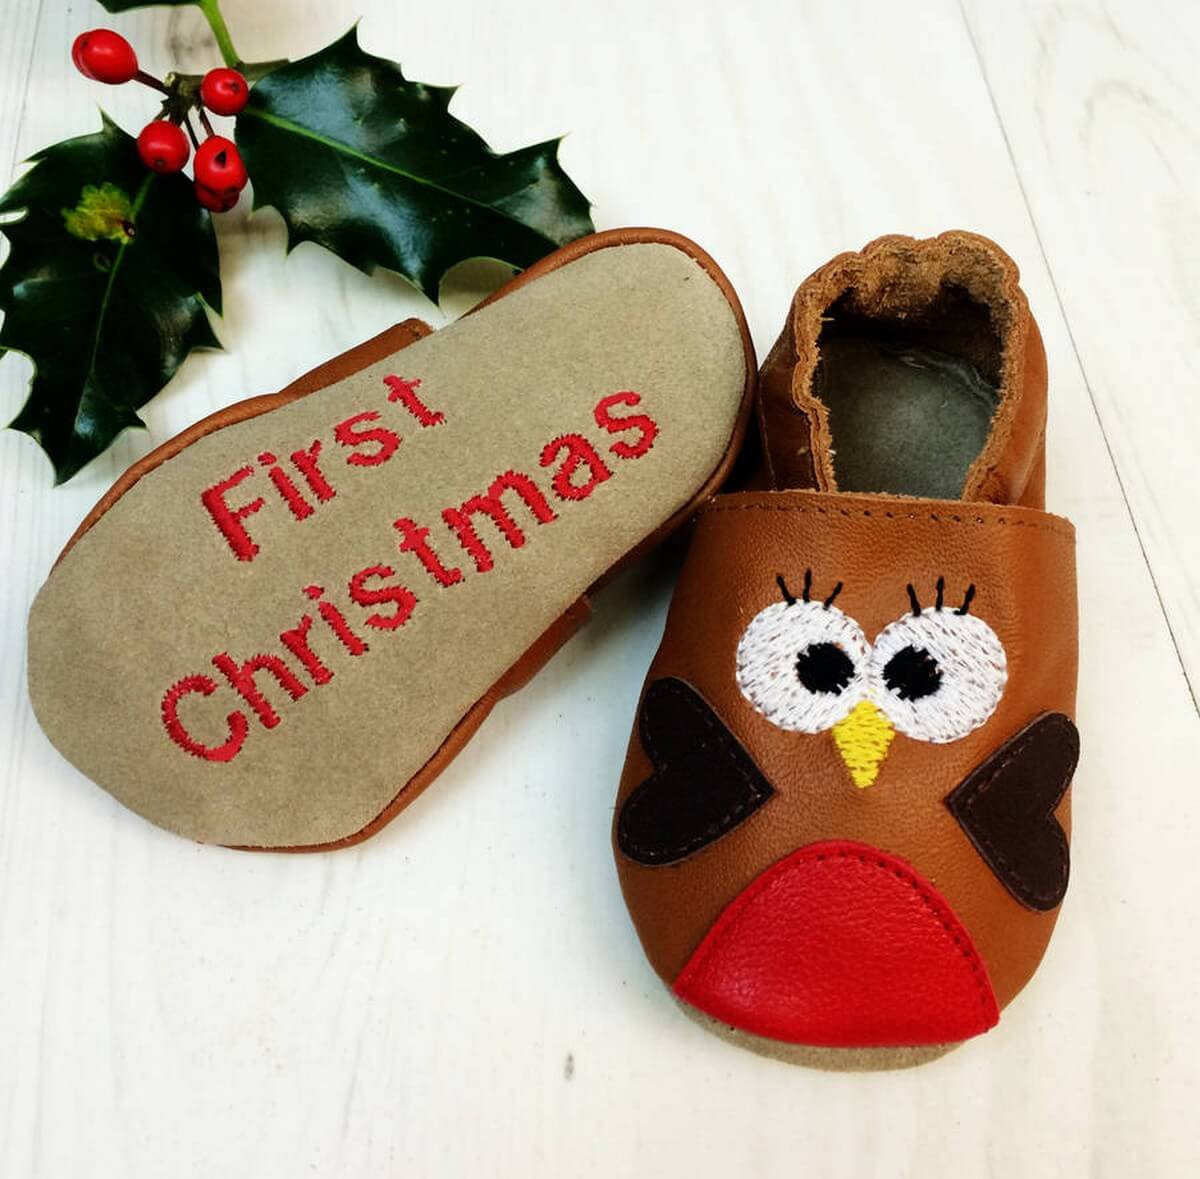 Celebrating a baby's first Christmas is something to be enjoyed, and your memories of the occasion will last a lifetime.